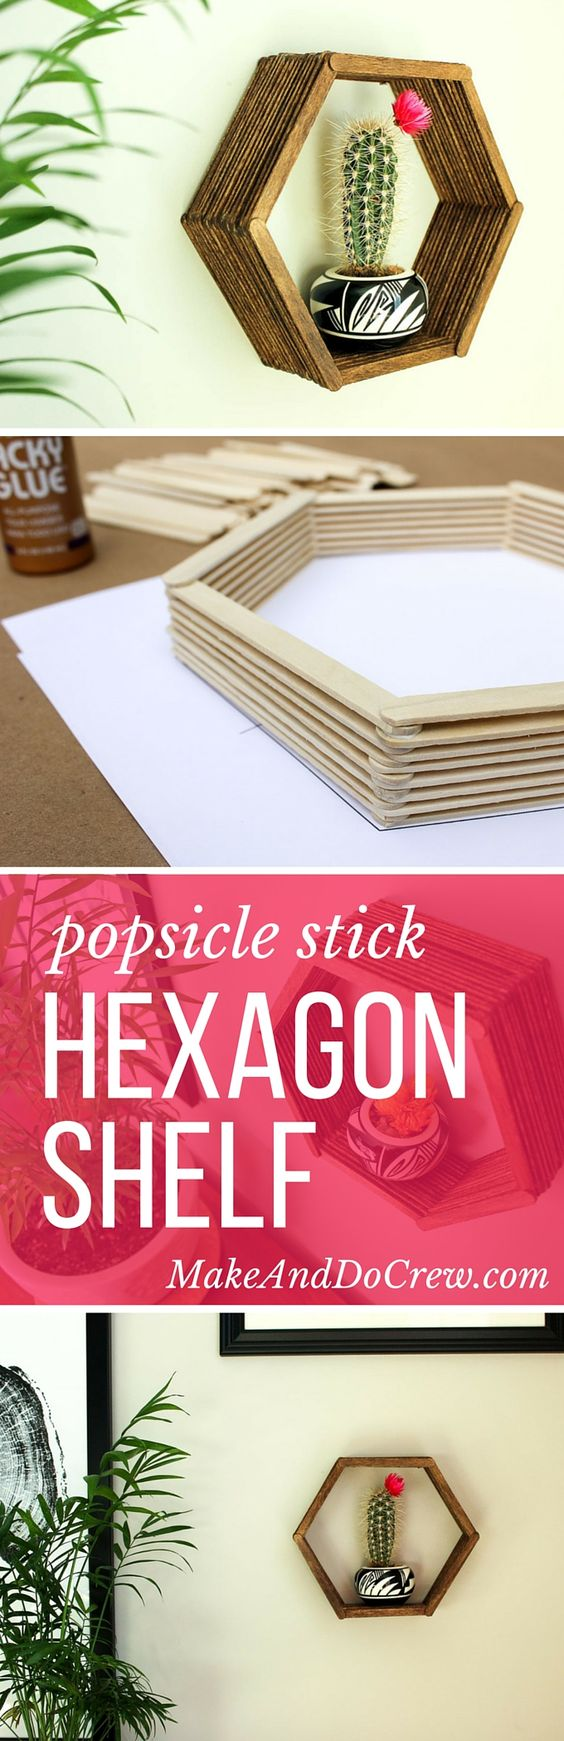 Easy Popsicle Stick Hexagon Shelf.